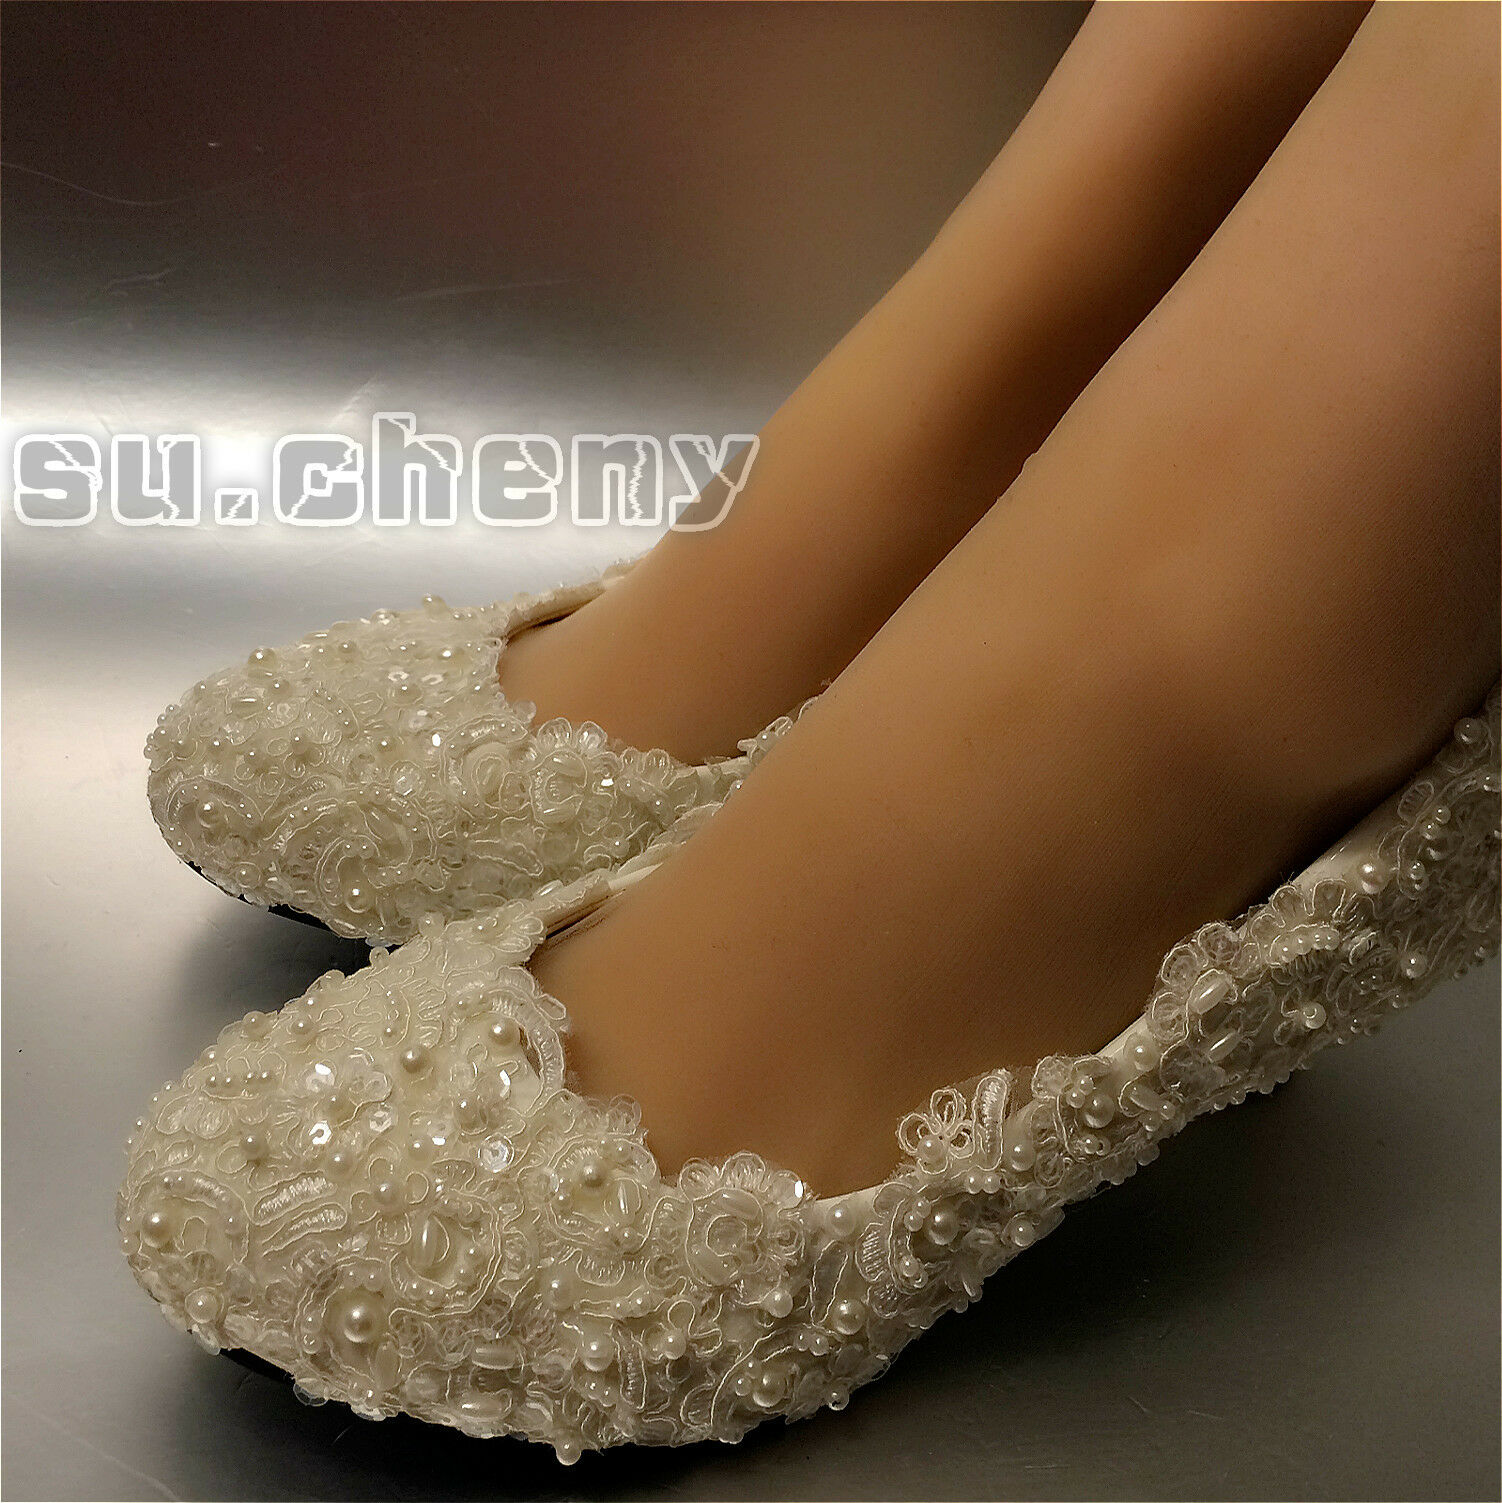 Su.cheny Su.cheny Su.cheny Flats low high heel Ivory white pearl lace Wedding Bridal pumps shoes 178292